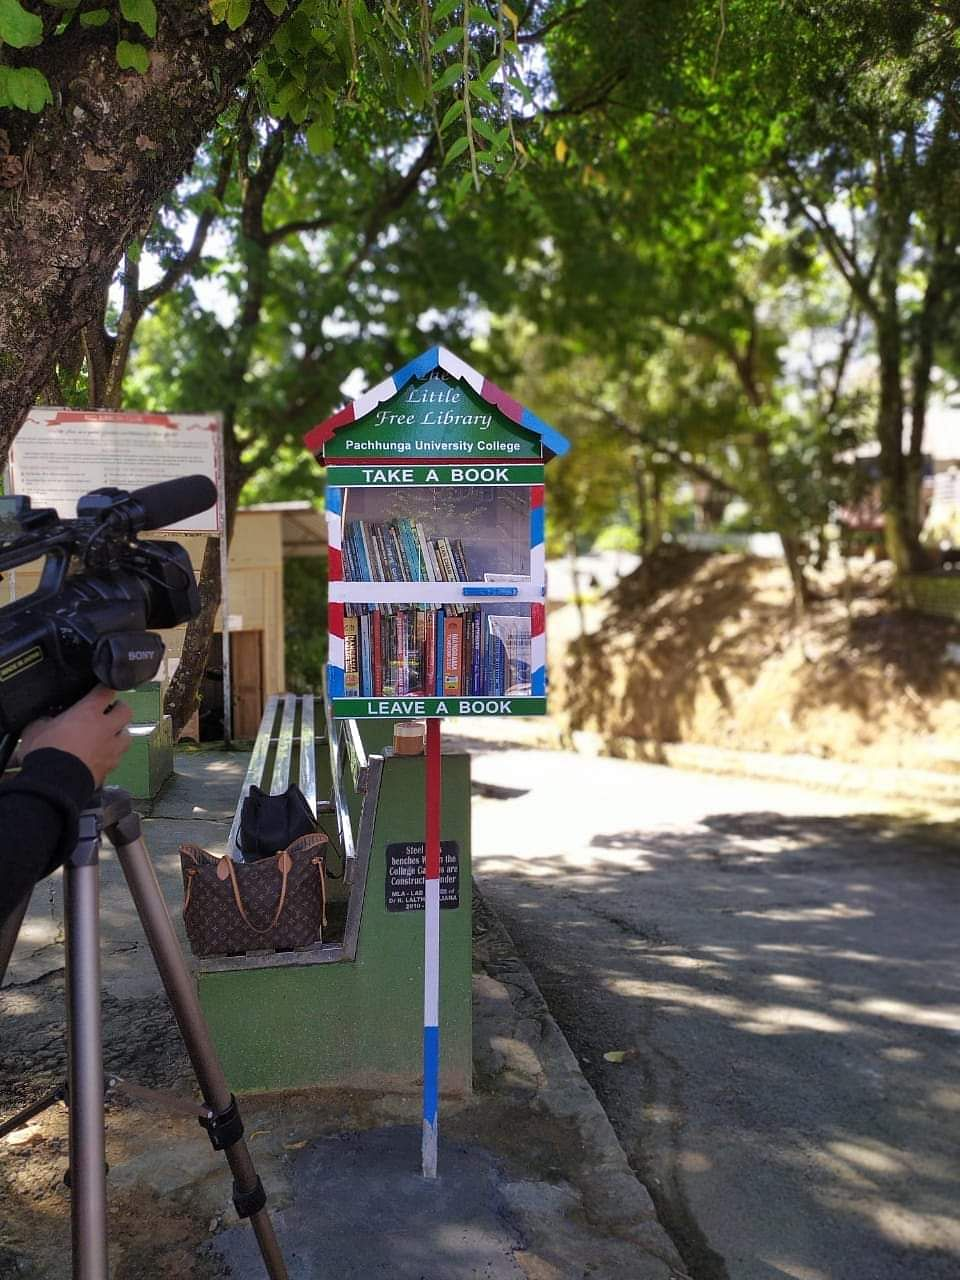 Pachhunga University College also has a roadside 'Little Free Library' on their campus